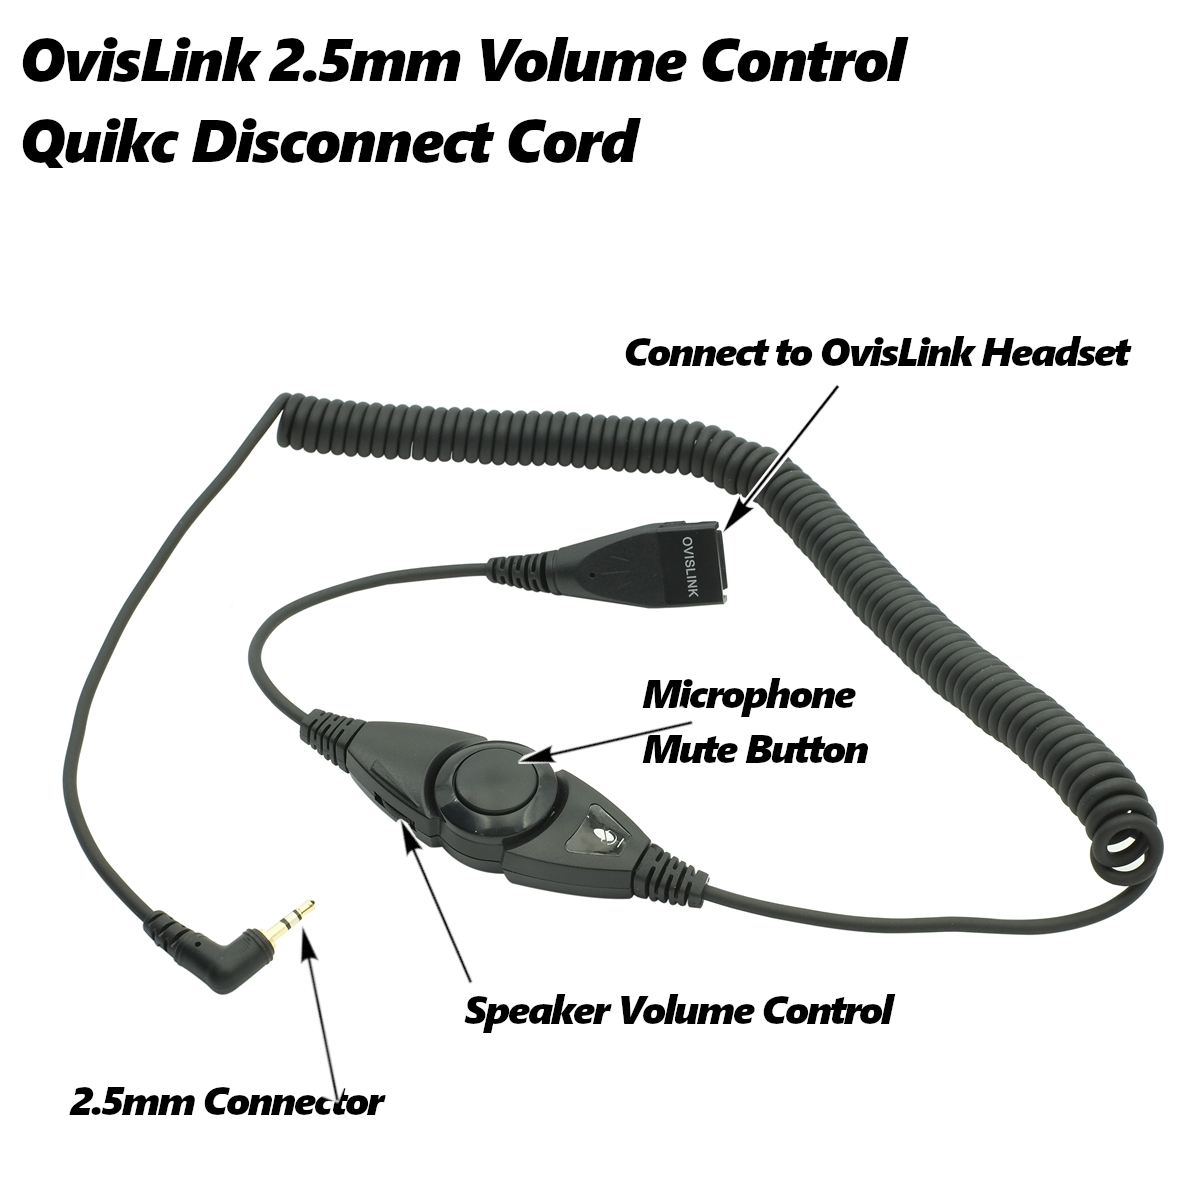 2.5mm quick disconnect cord with volume control and mute